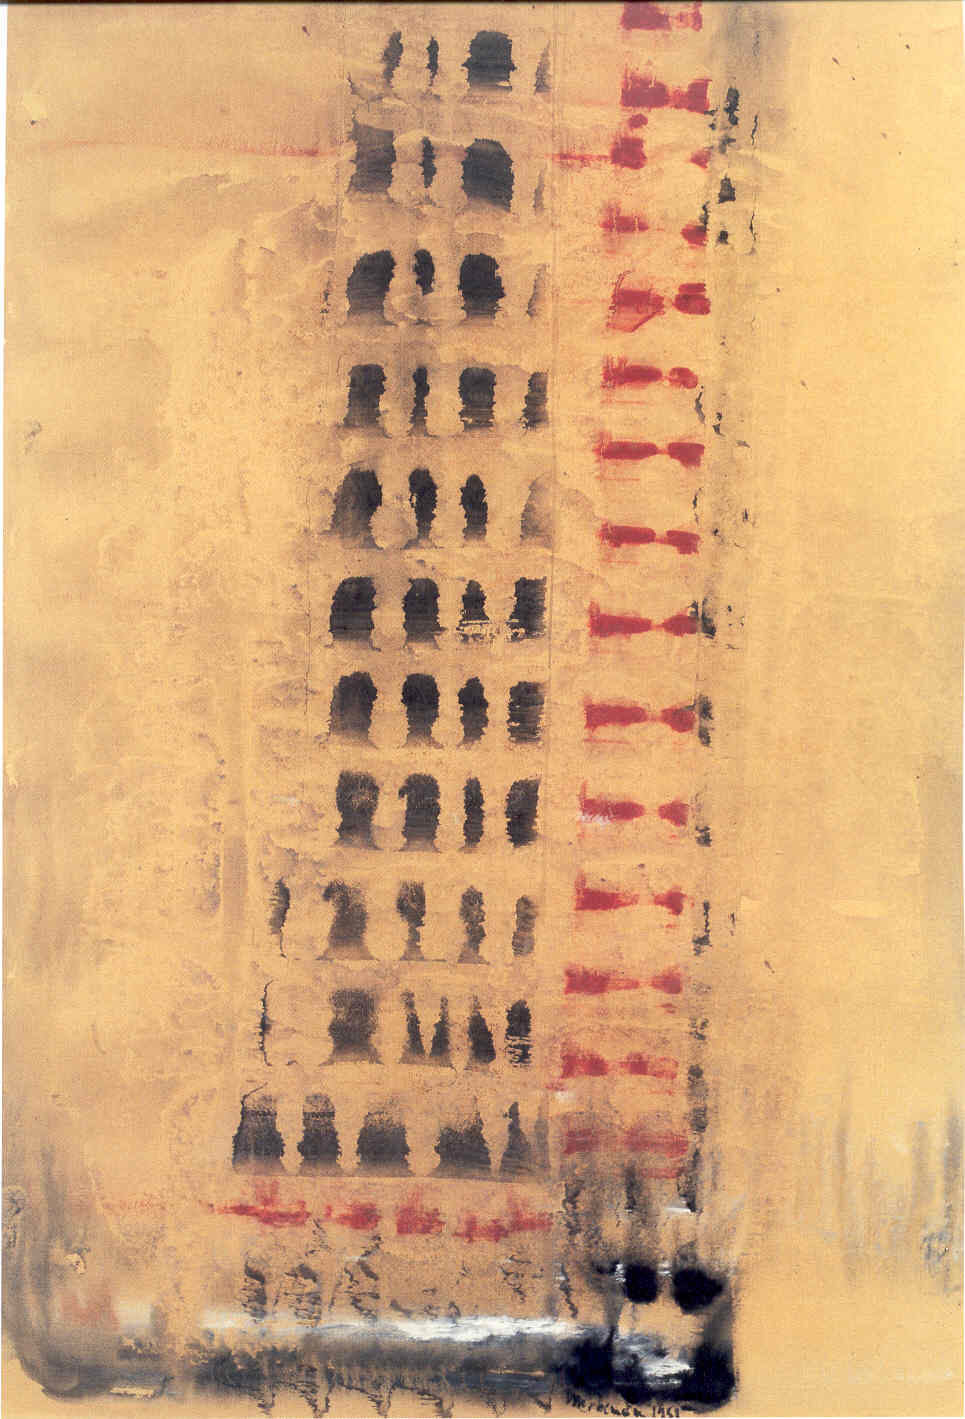 Senza Titolo, 1951, tempera sintetica su carta intelata, cm 75,5 x 51,5  Untitled, 1951, synthetic tempera on canvassed paper, cm 75,5 x 51,5